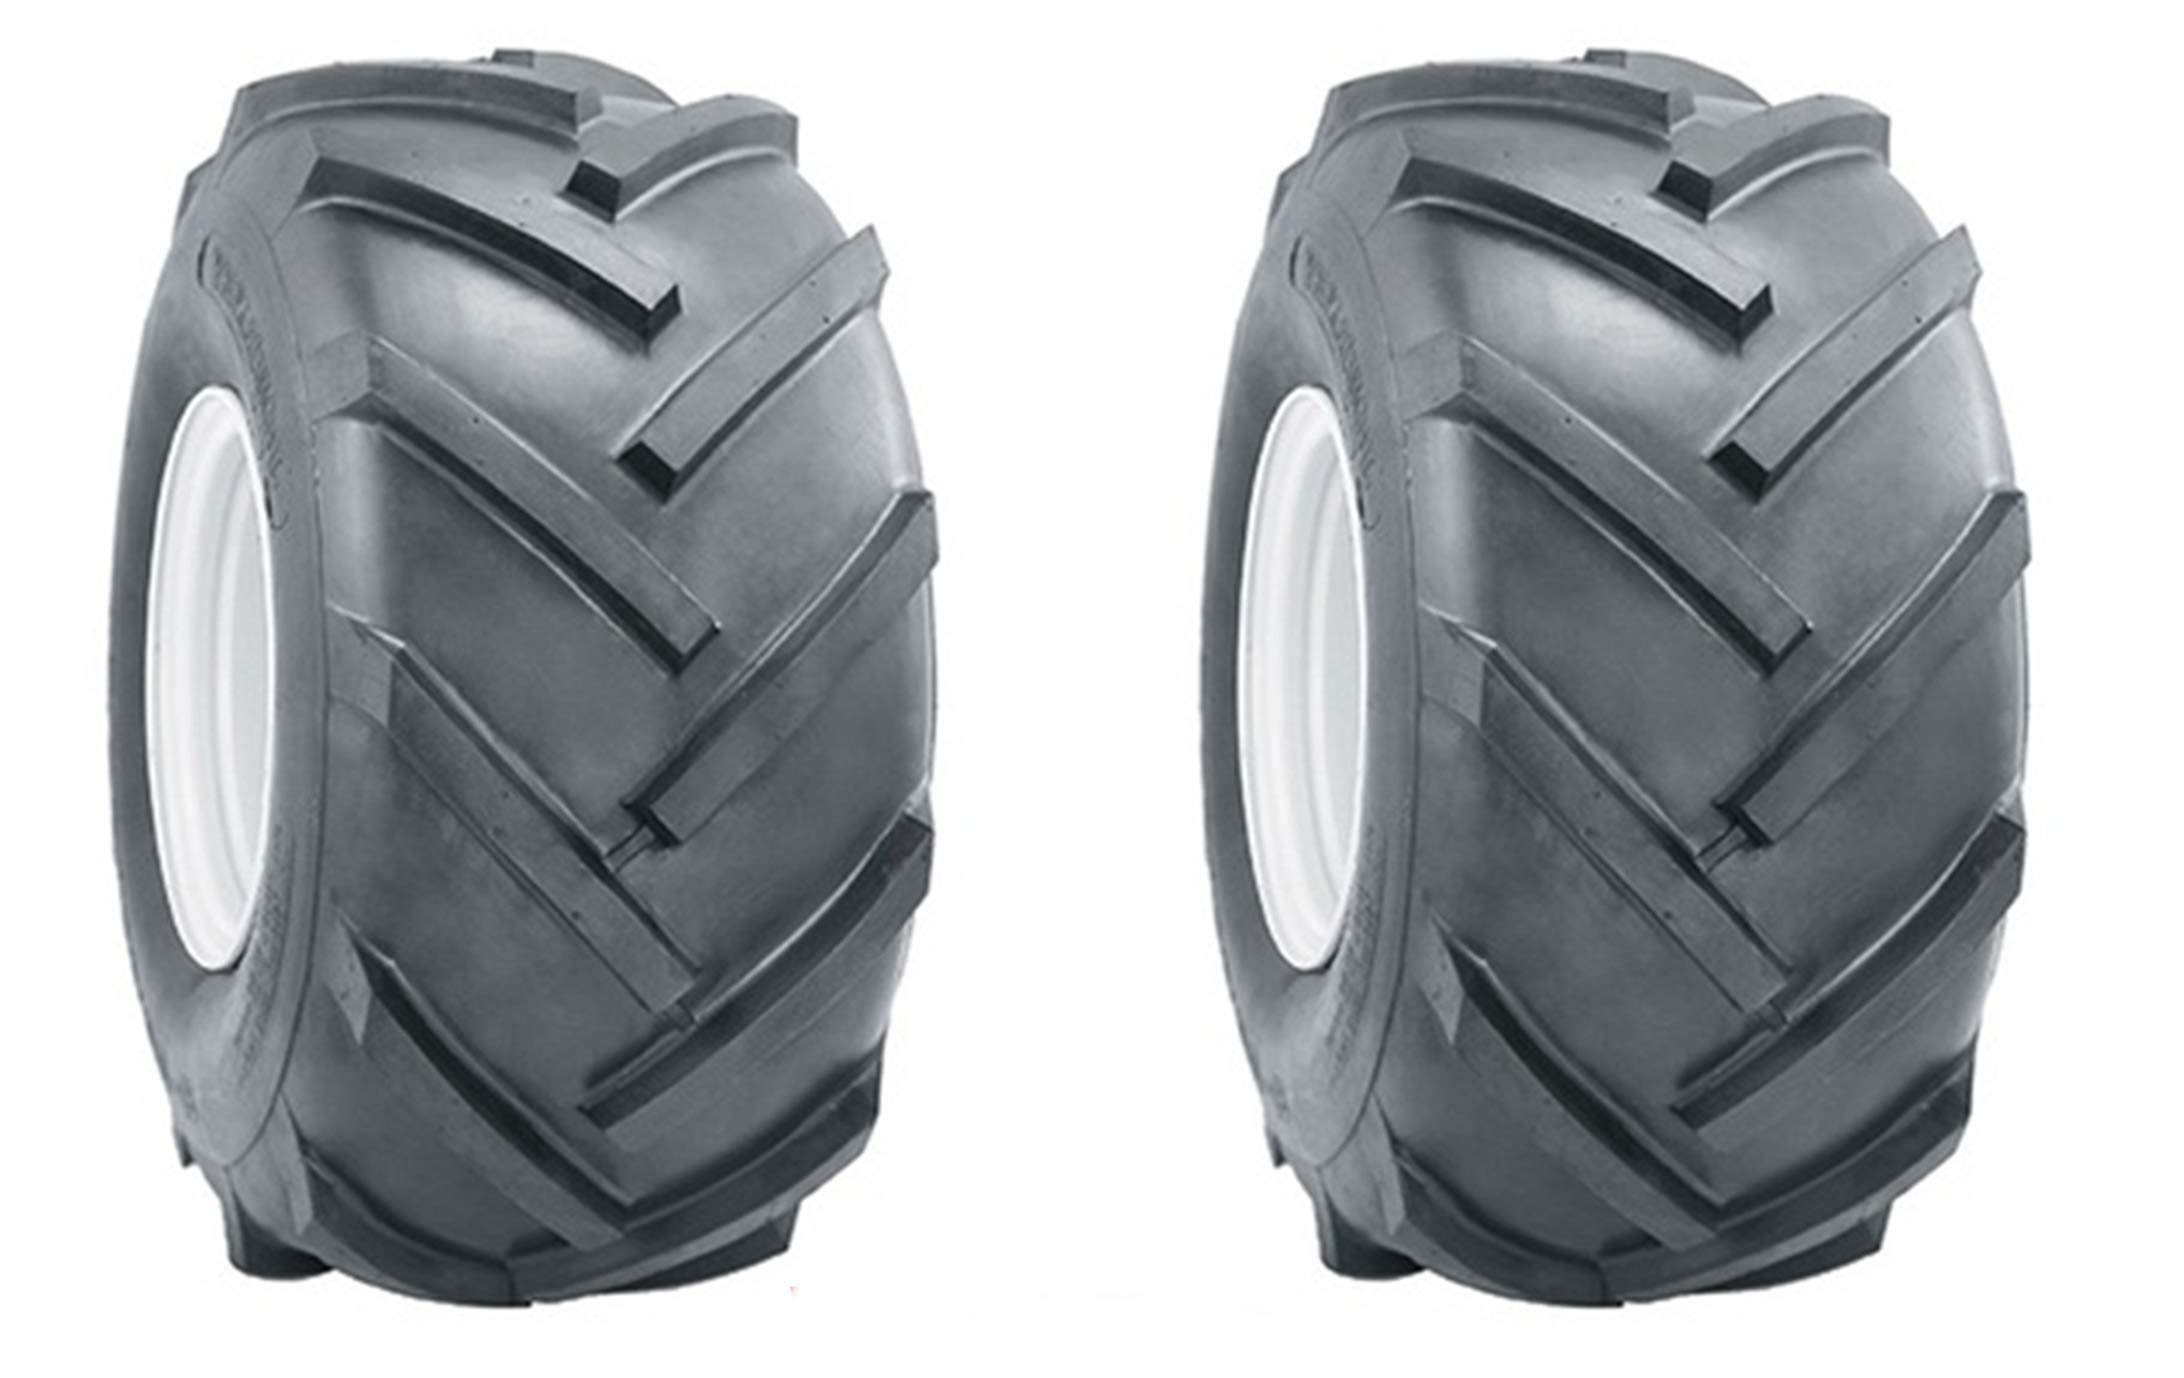 K-9 Two 15x6.00-6 15x600-6 R1 Lug Super Traction Tires Lawn Tractor Heavy Duty 6 Ply Rated